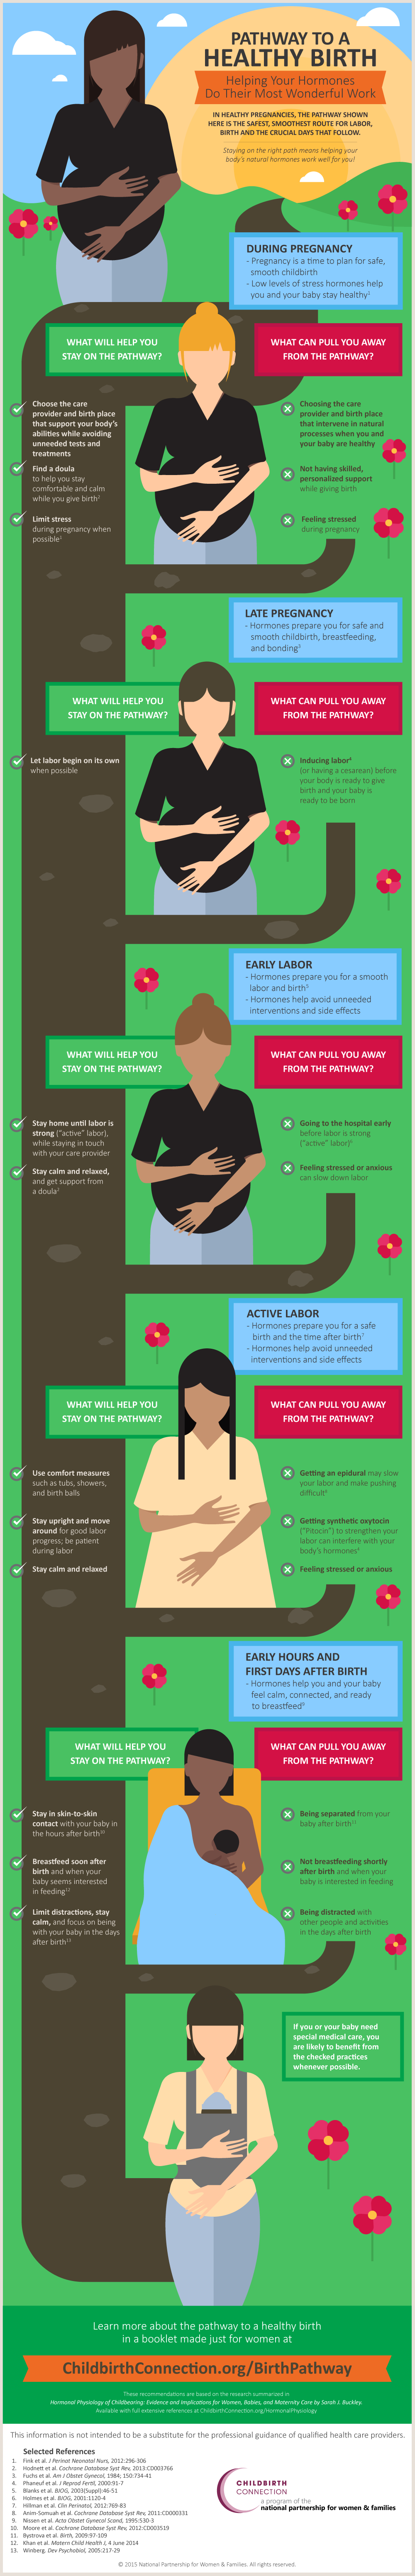 HPoC Pathway to a Health Birth Infographic